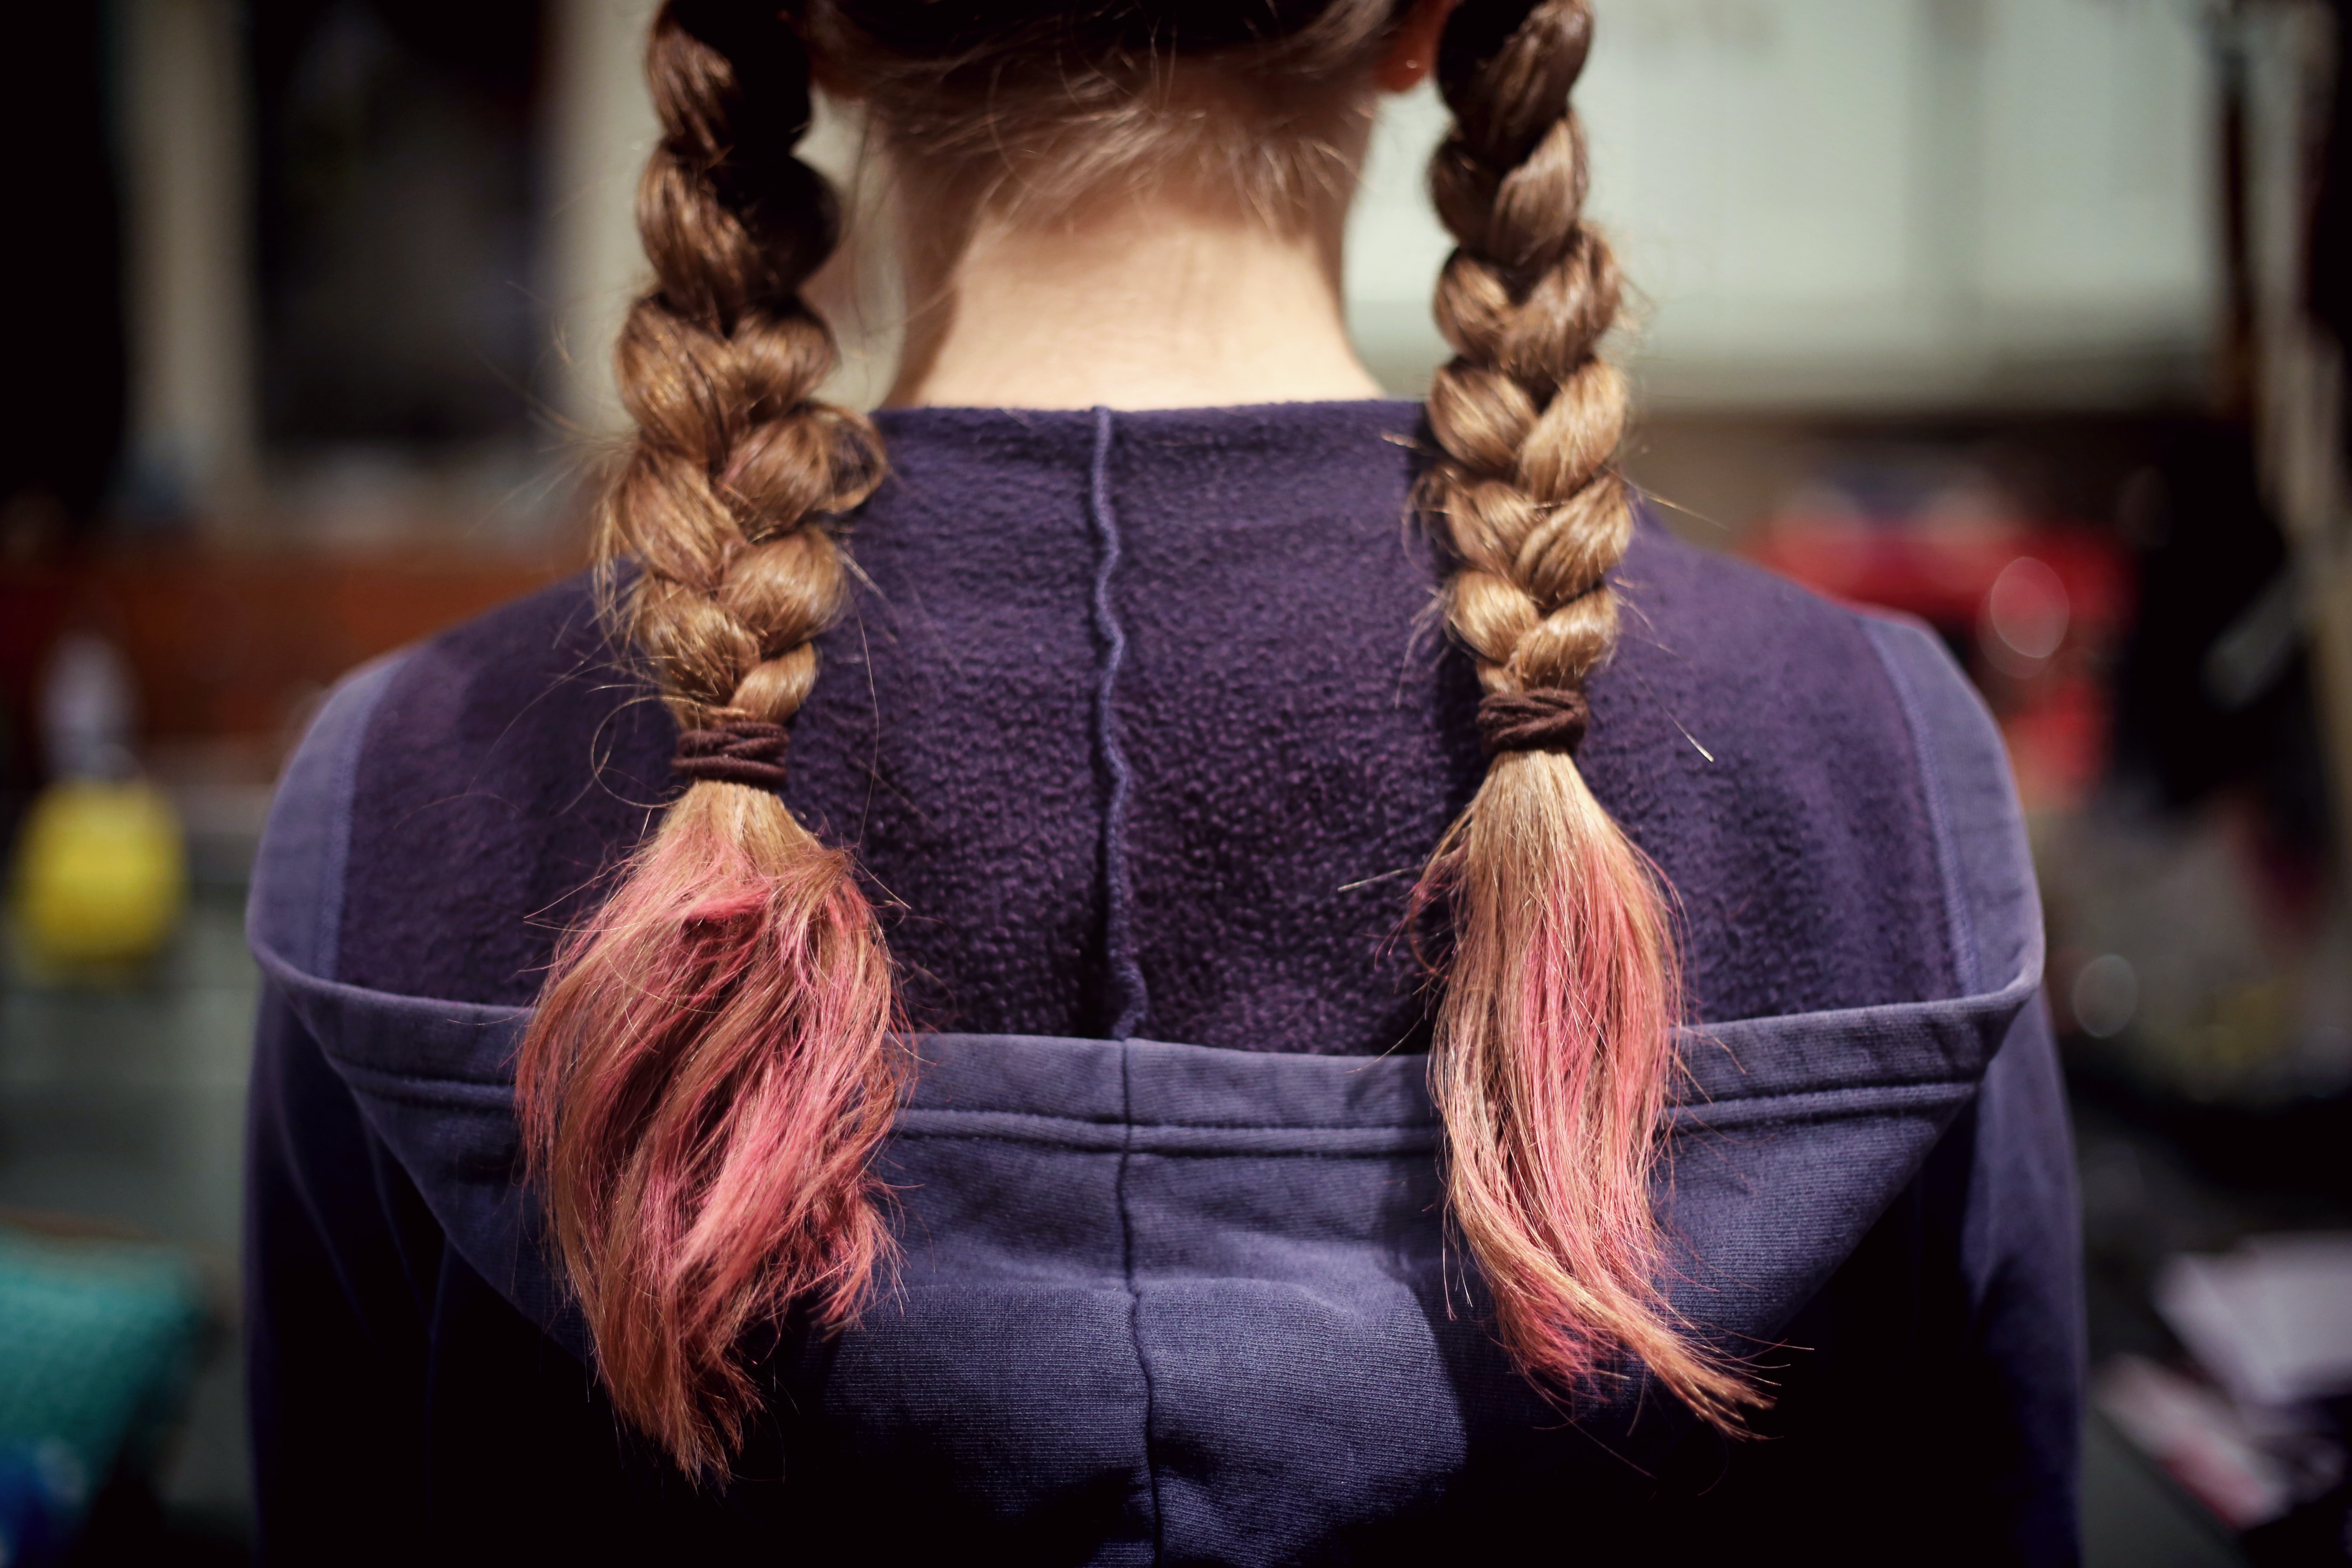 Standing behind a girl whose hair is in braided pigtails with pink ends